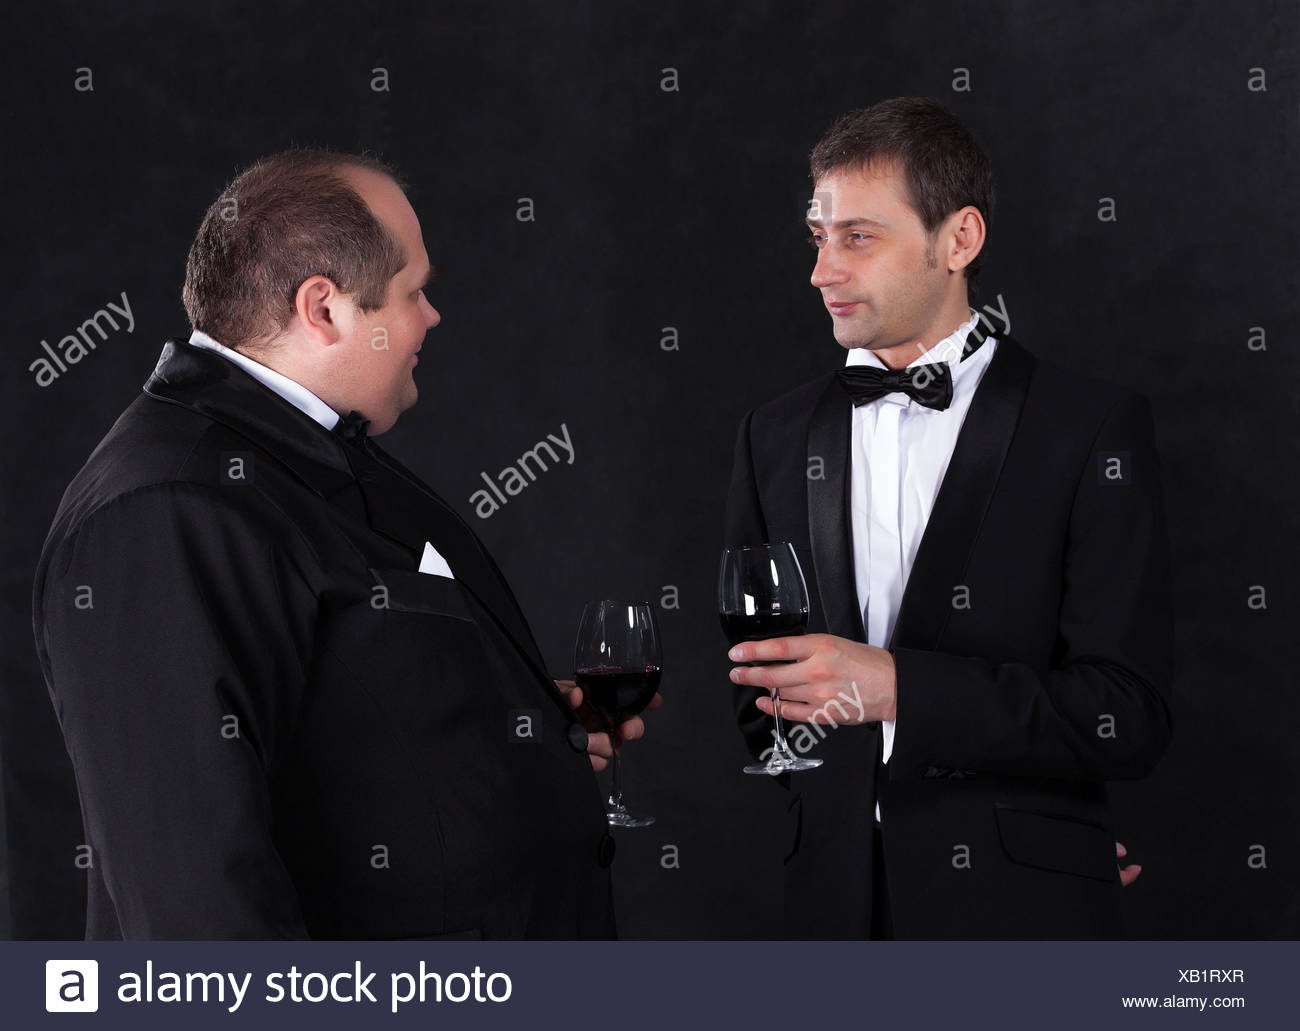 Two stylish businessman in tuxedos with glasses of red wine - Stock Image